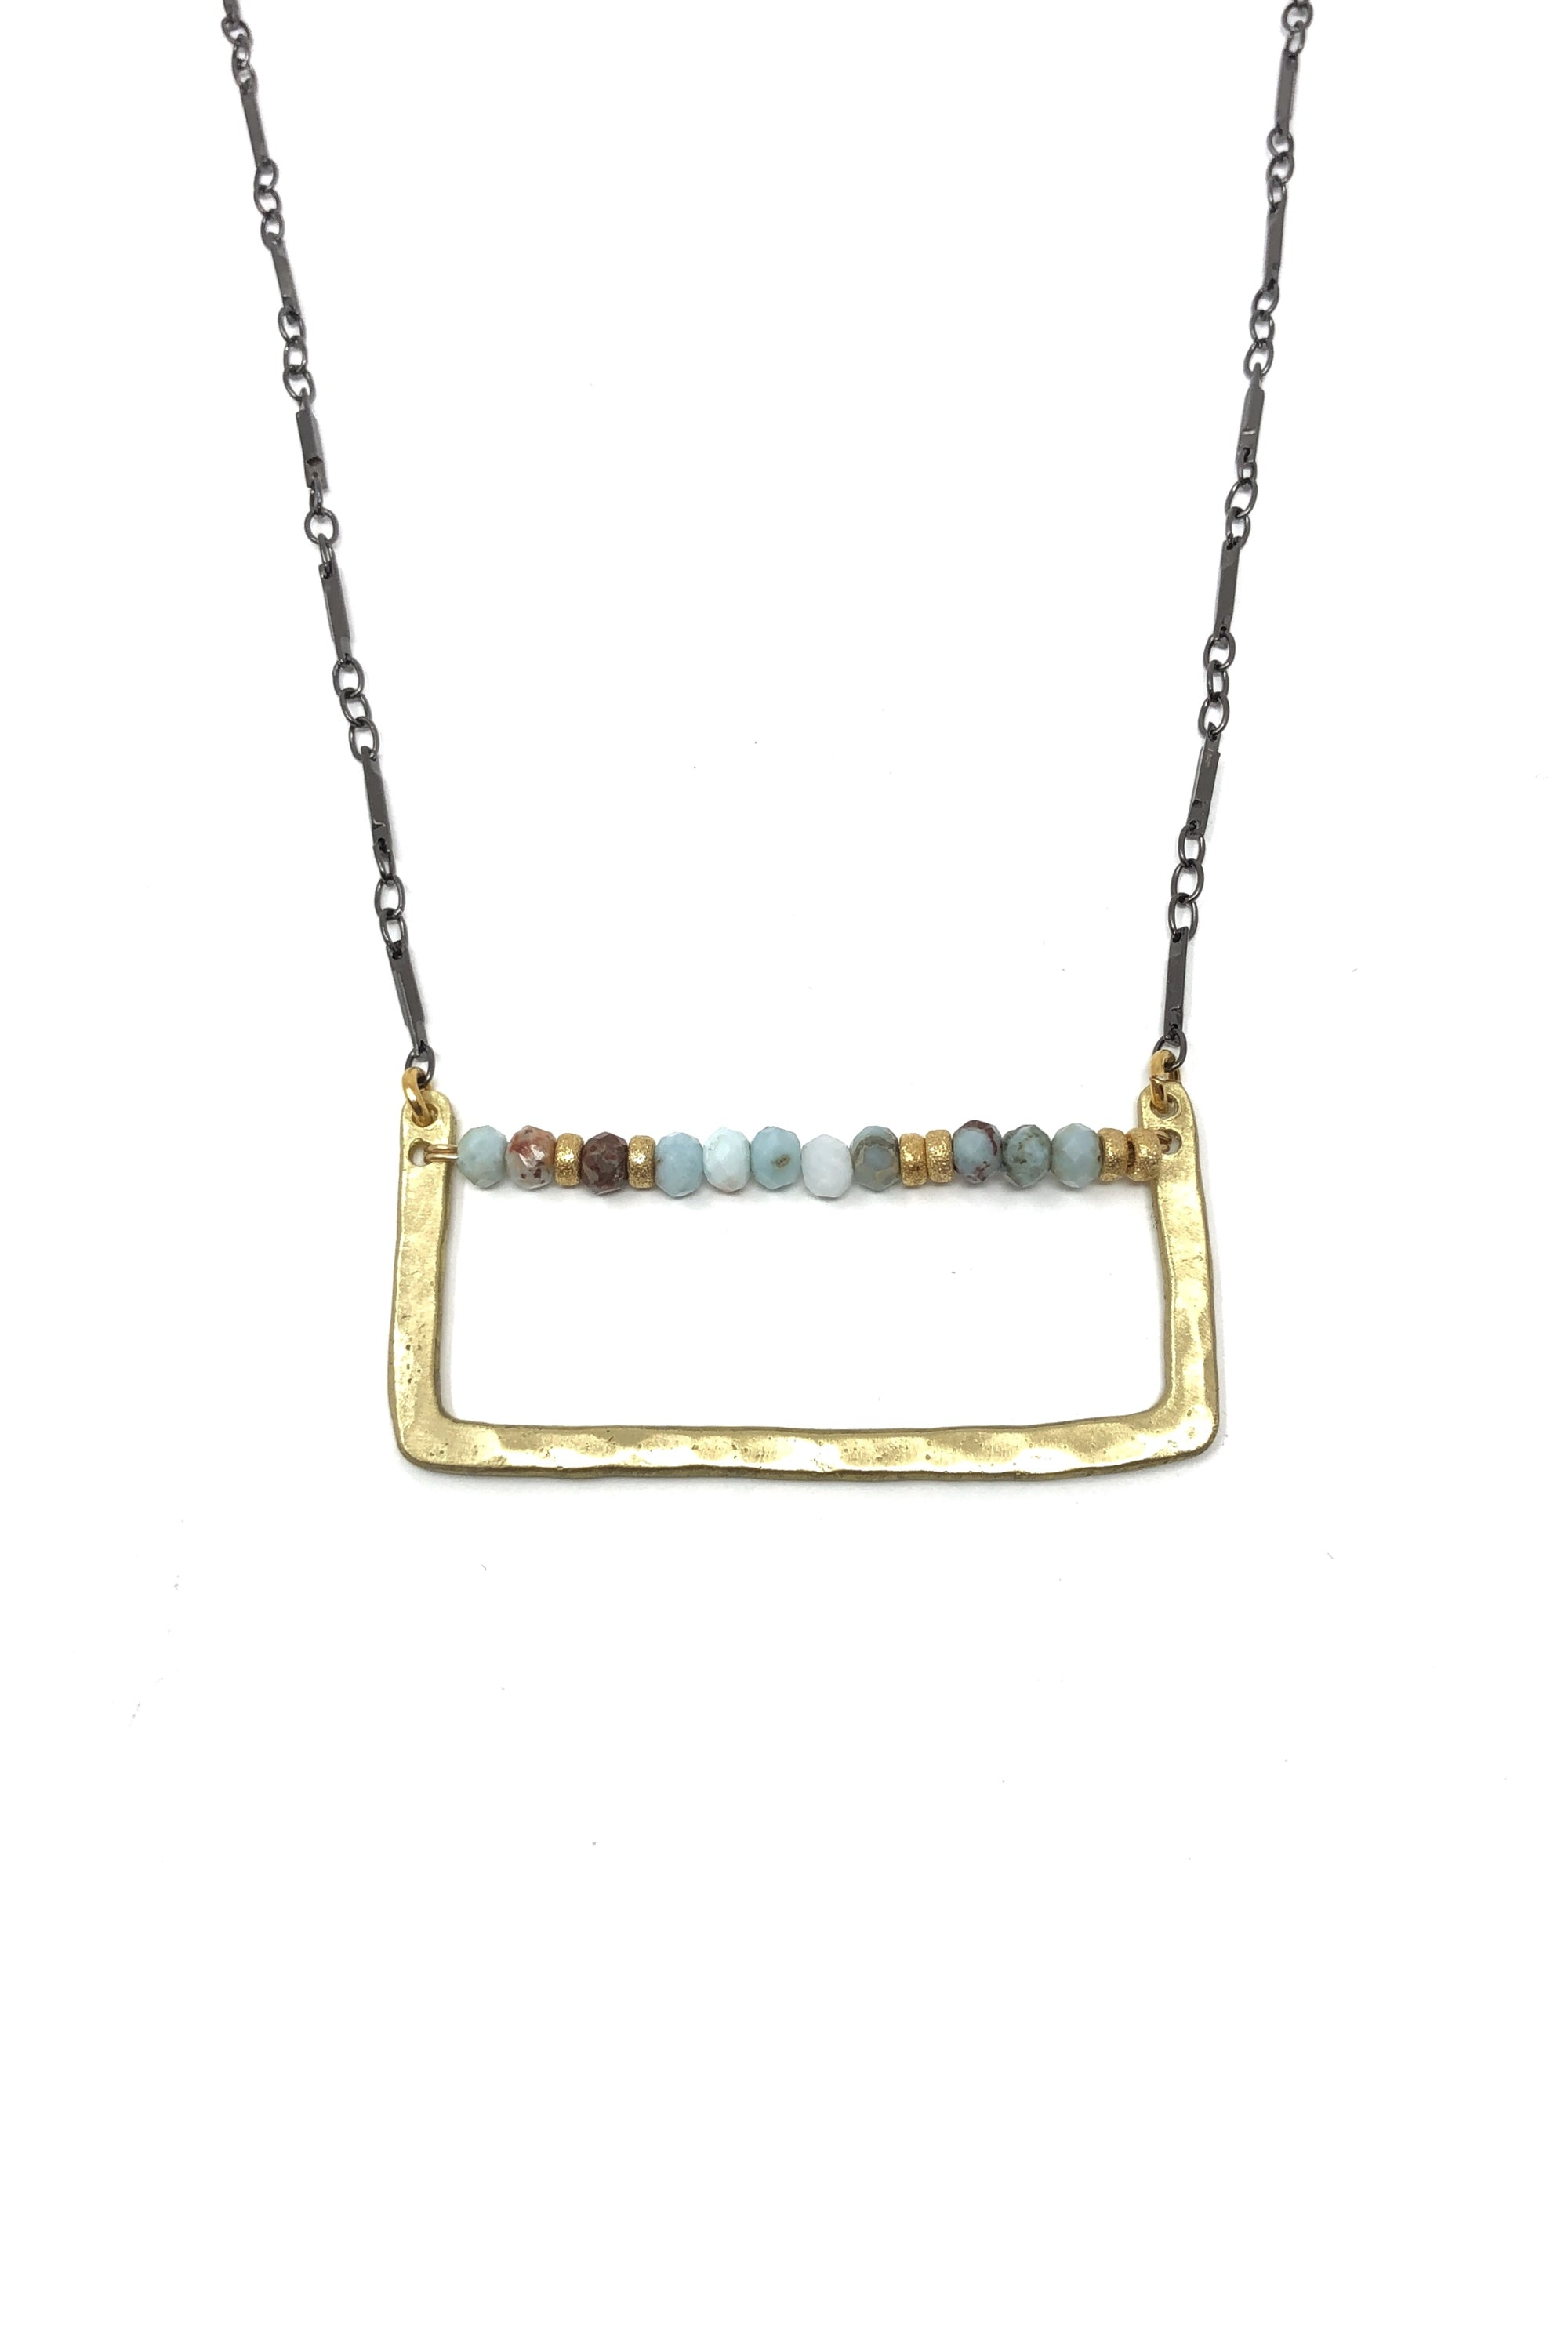 Hammered Gold and Larimar Necklace